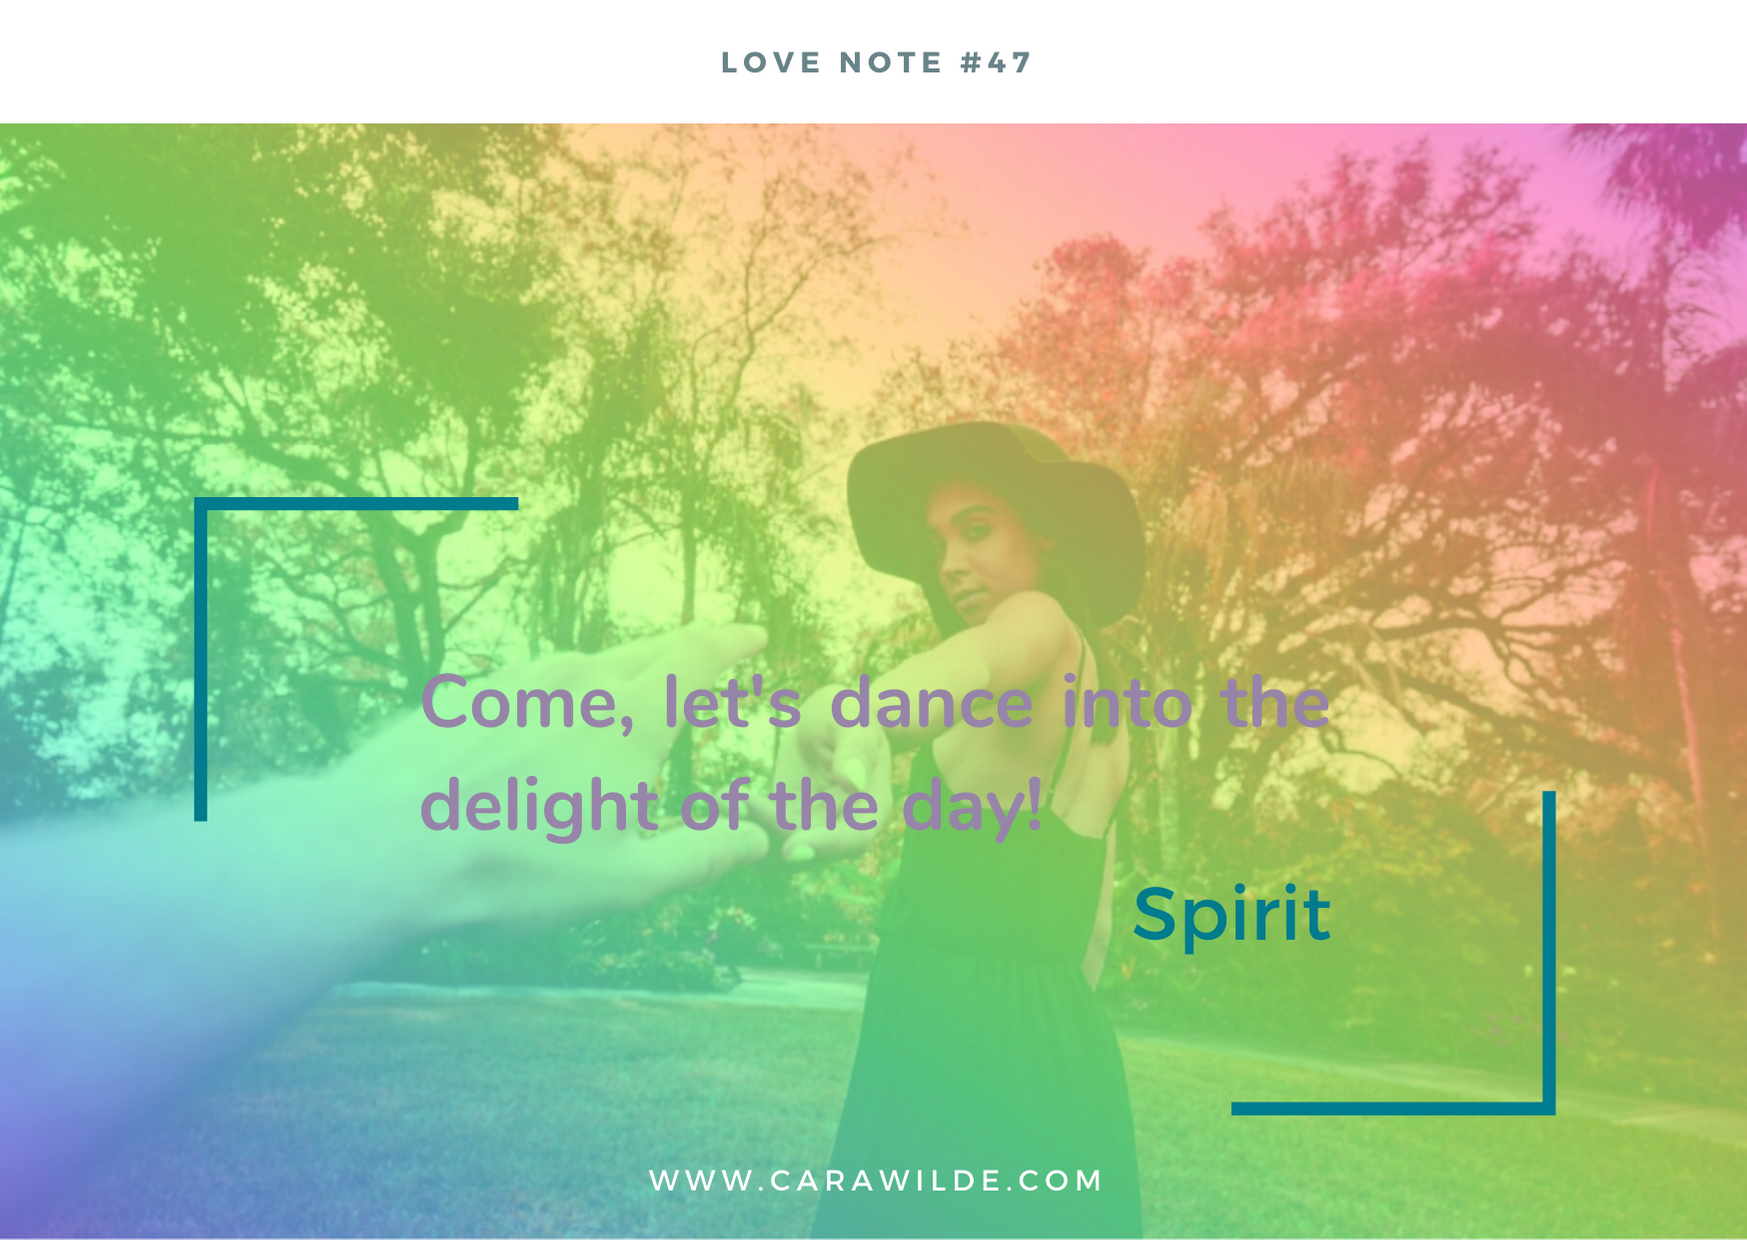 Love Note#47 How to experience more joy and meaning in your day